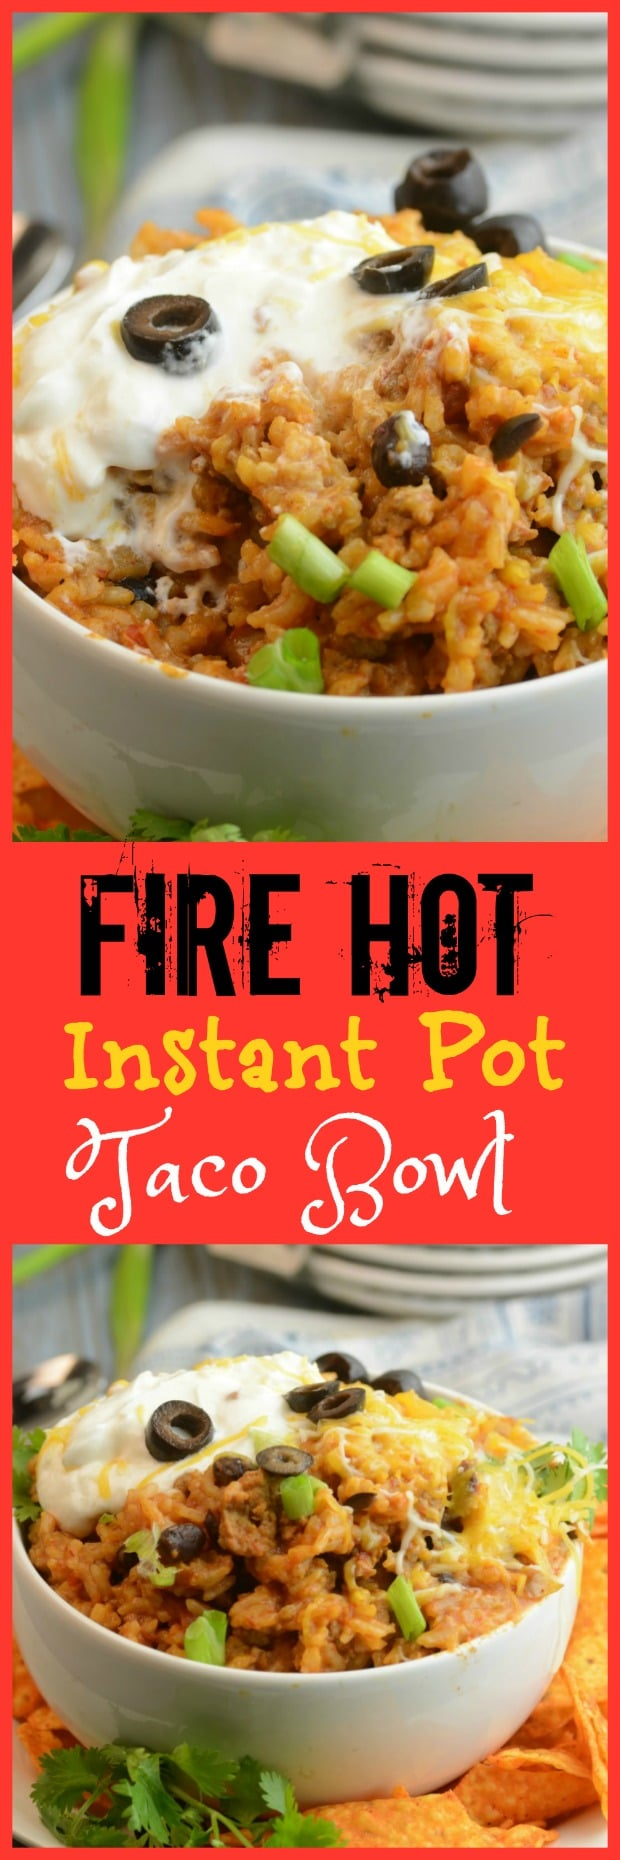 Fire Hot Instant Pot Taco Bowl